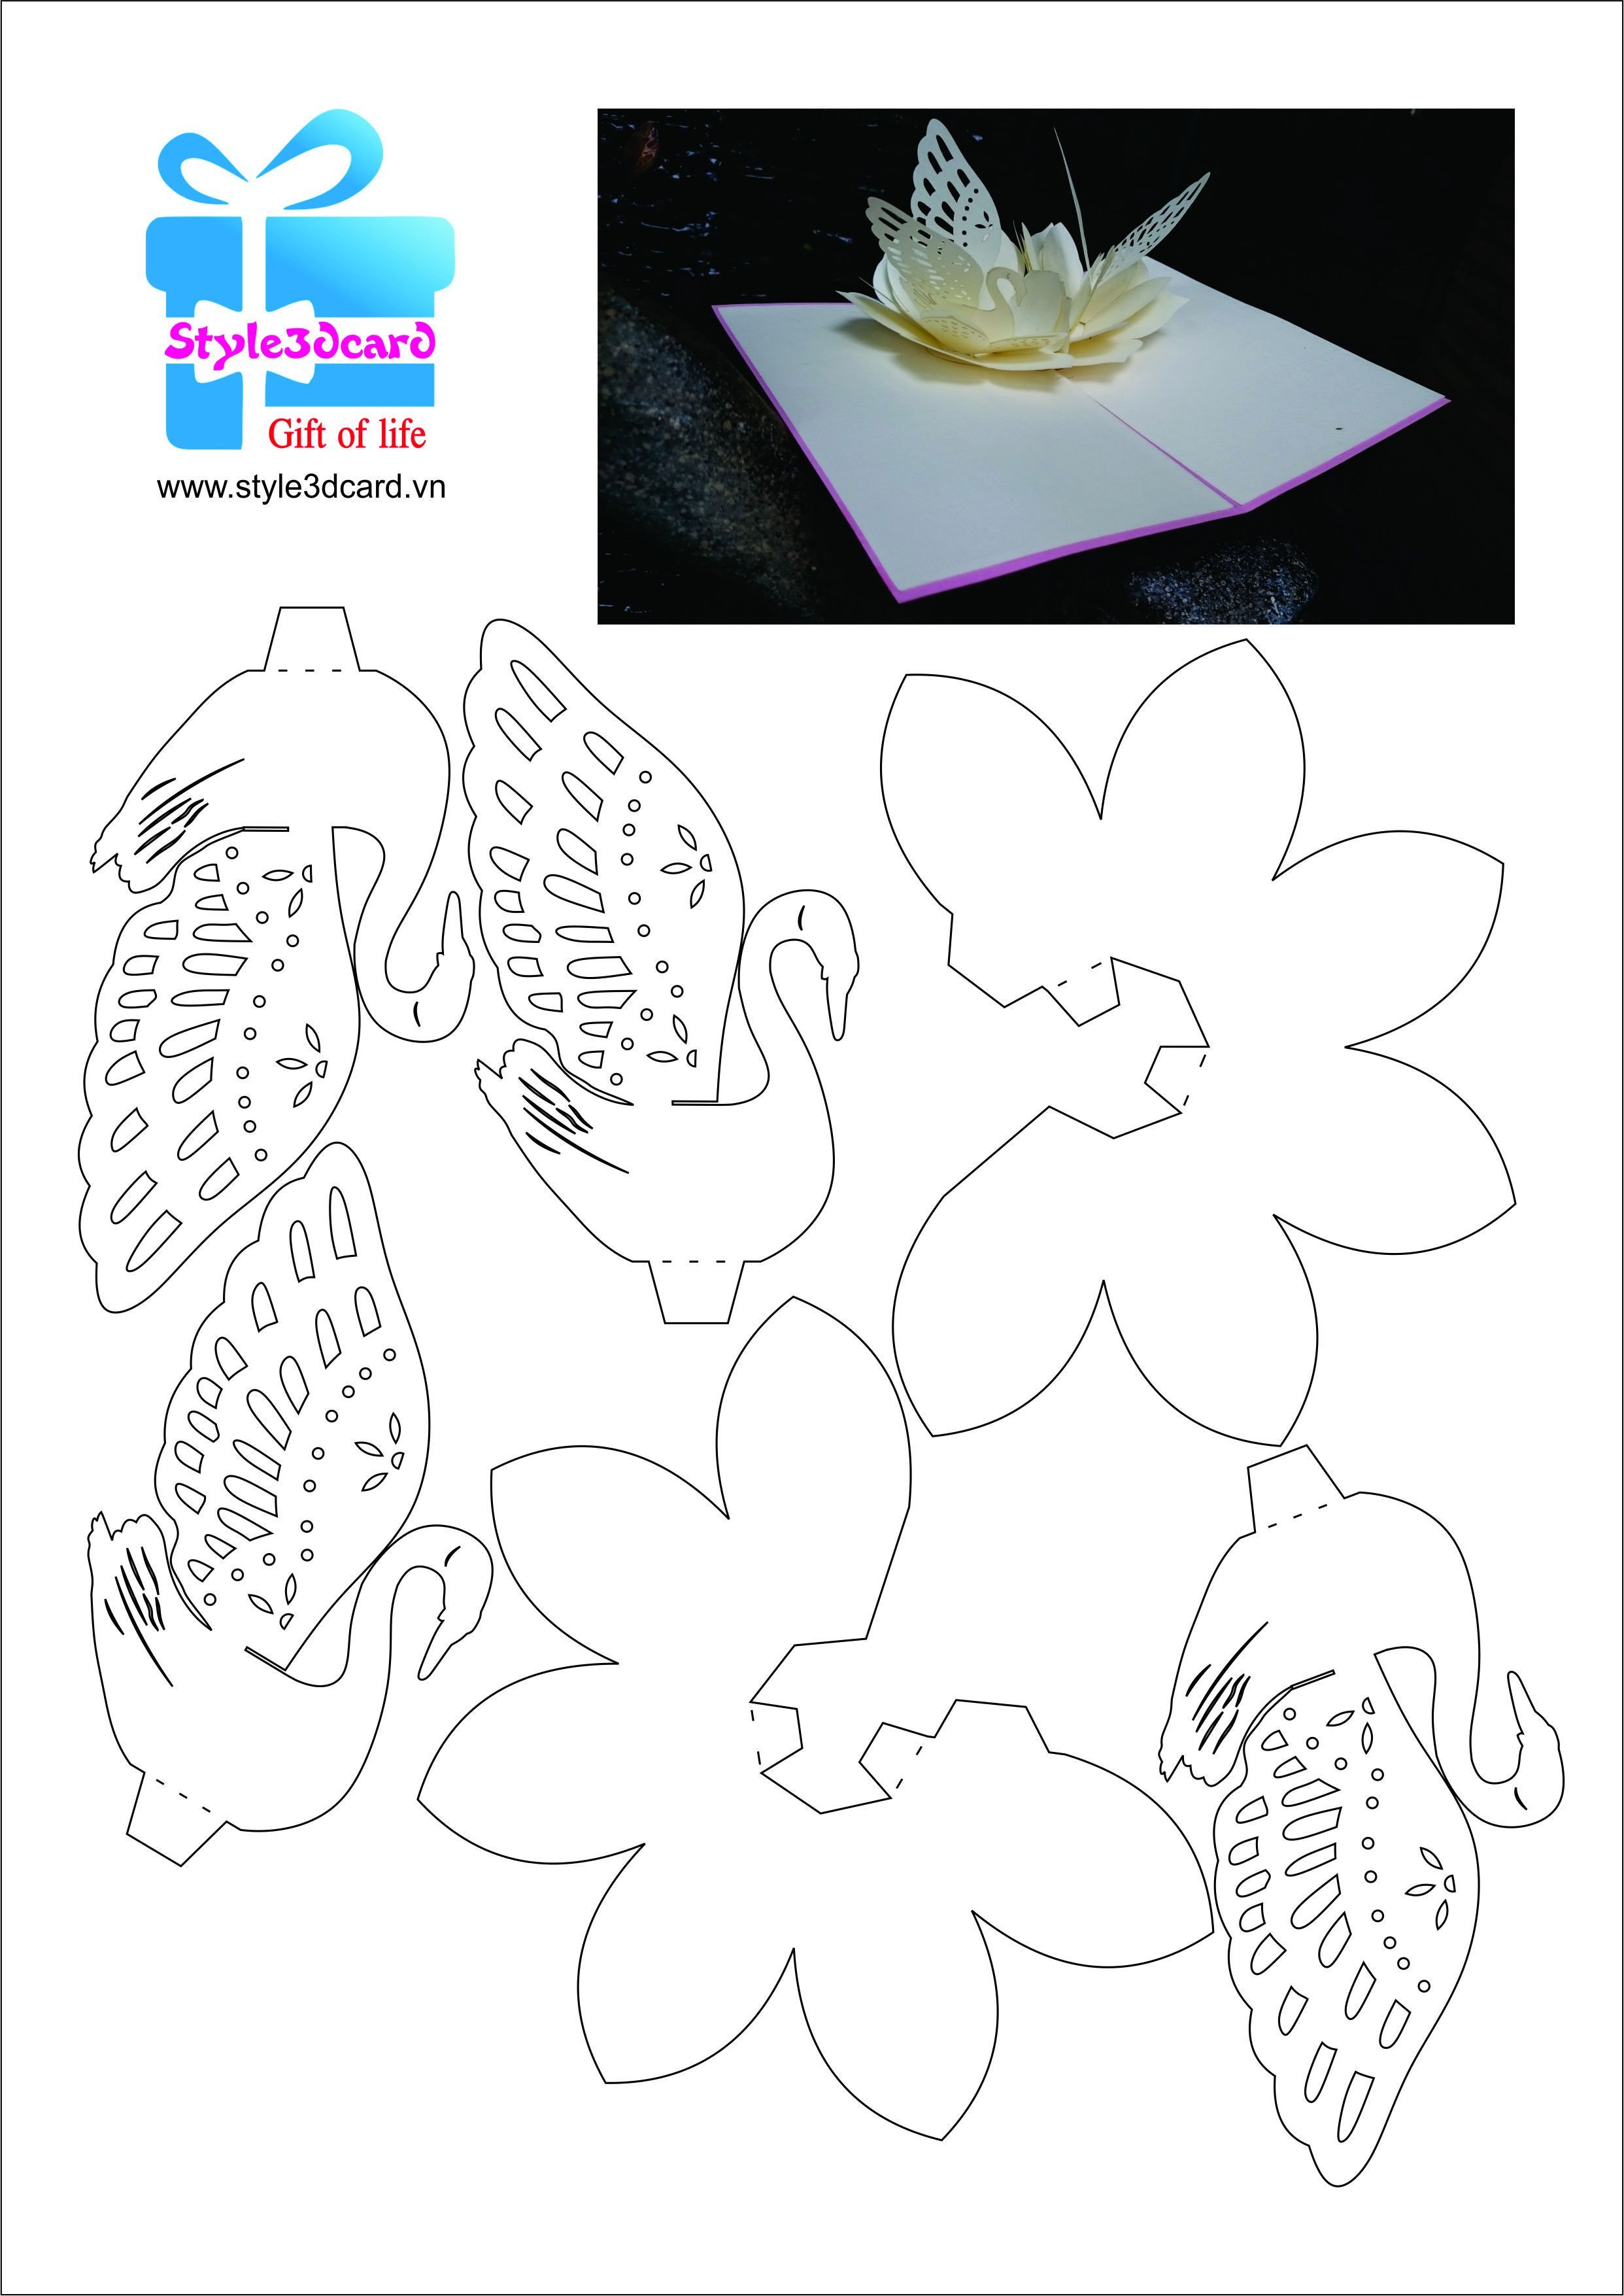 000 Incredible Pop Up Card Template Concept  Templates Birthday Free Download Printable FlowerFull